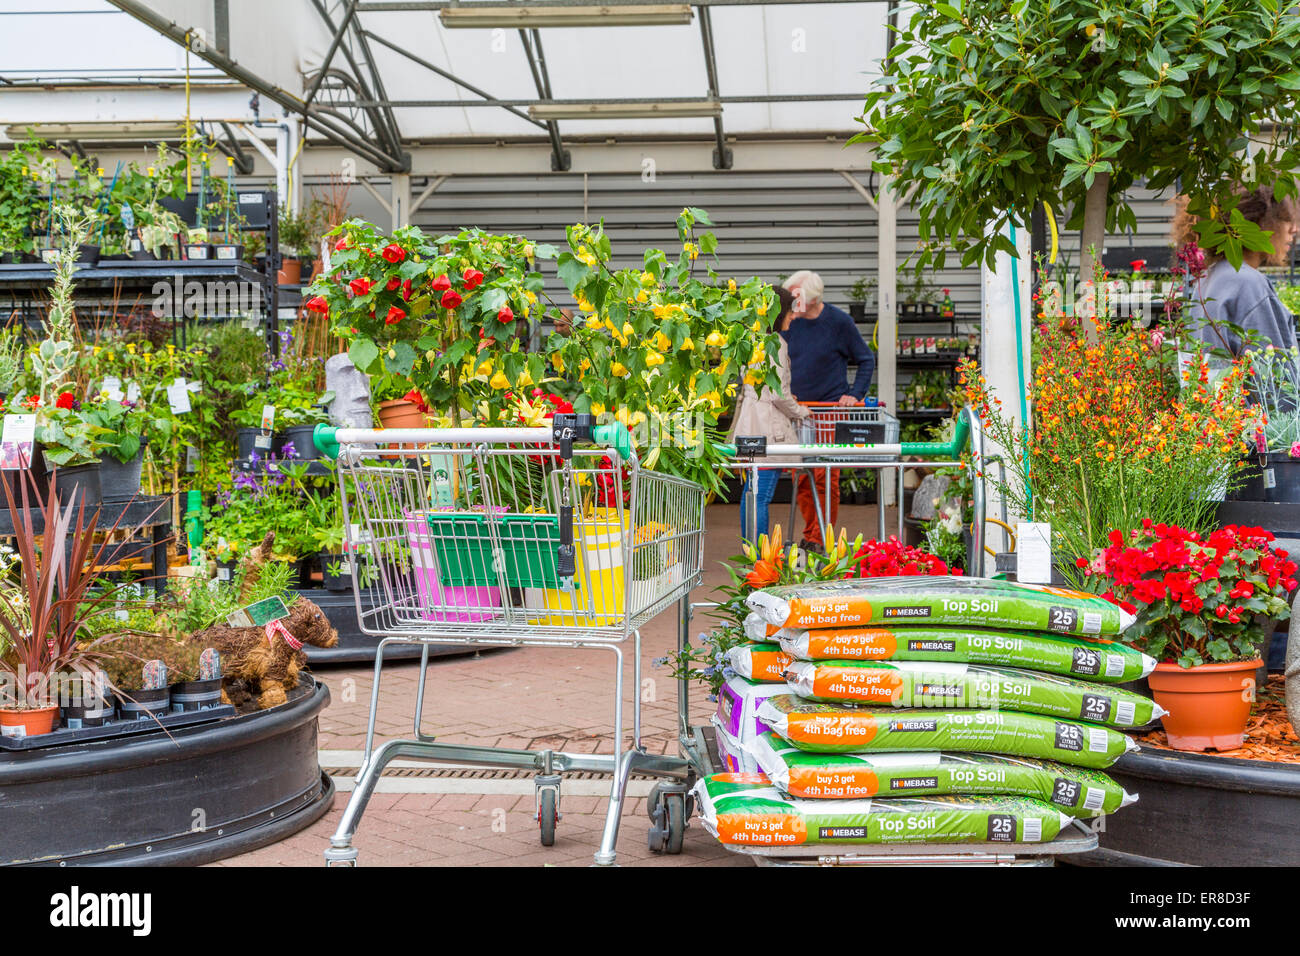 The homebase garden stock photos the homebase garden for Garden trees homebase